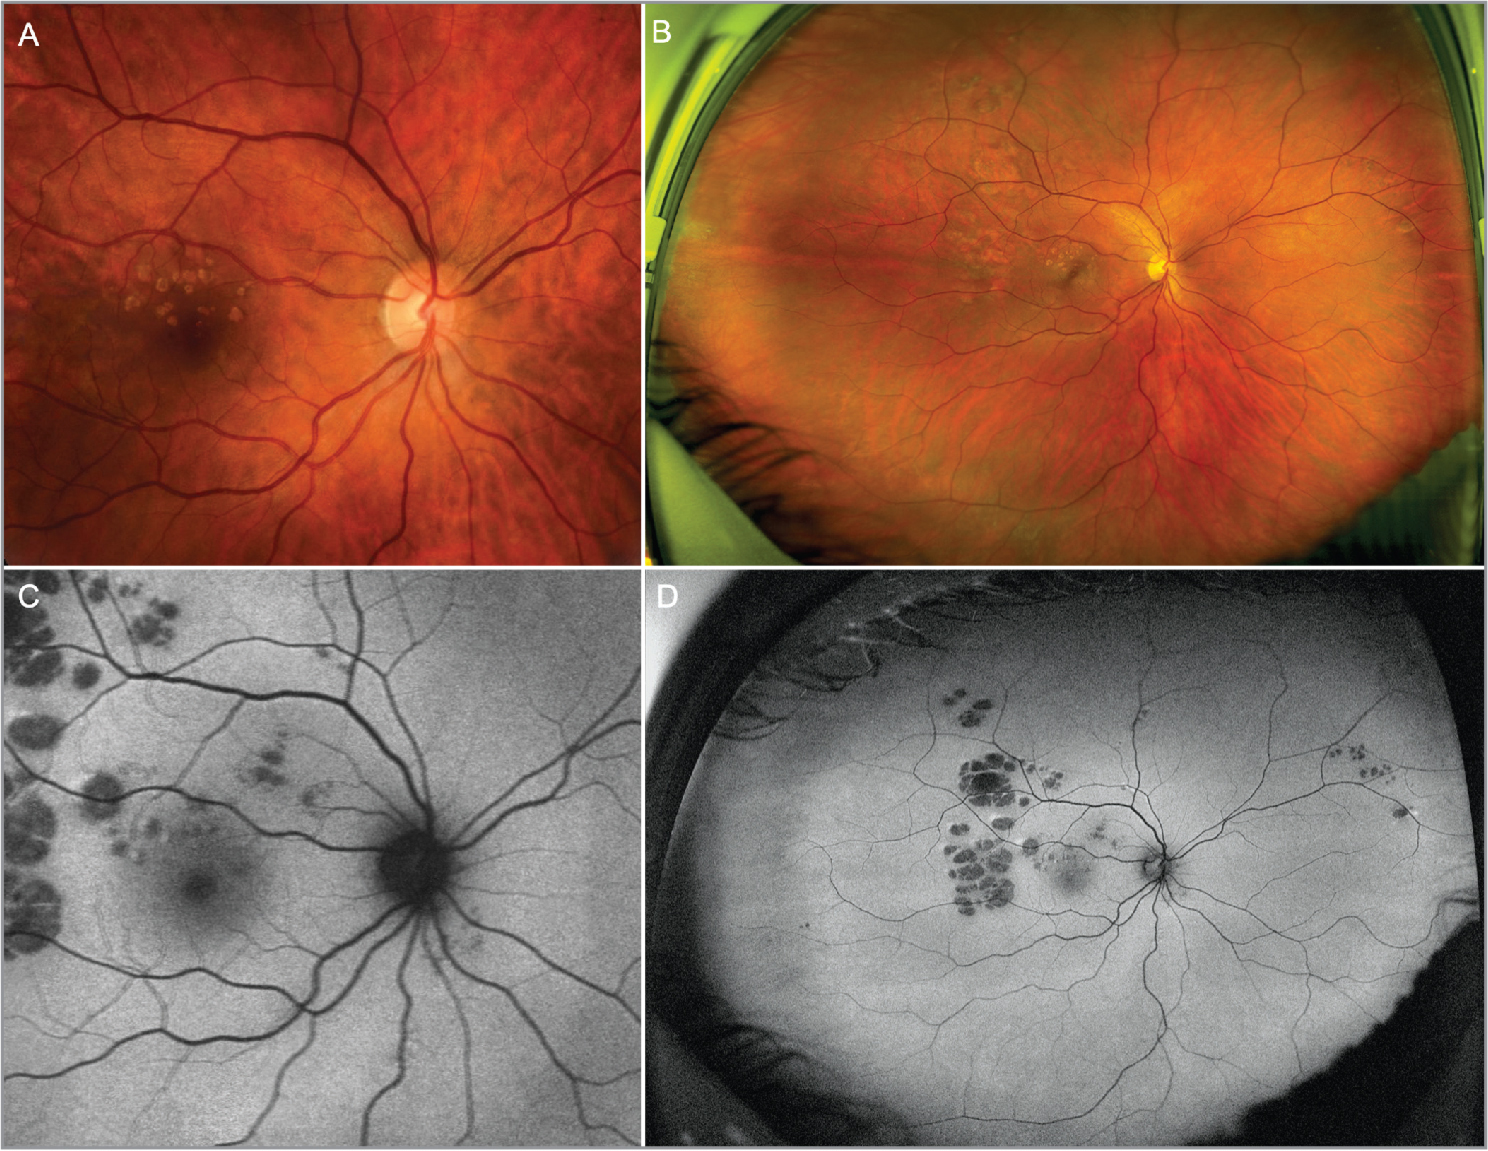 Color fundus photography and fundus autofluorescence (FAF) in congenital grouped albinotic spots (CGAS) over the course of 8 years (2011 to 2019). (A) Color fundus photography (CFP) from baseline where multiple grouped albinotic spots are seen in the macular area. (B) Ultra-widefield (UW) CFP from the patient's last visit shows that the lesions extend beyond the macular area, especially affecting the superotemporal midperiphery. (C) Blue-light FAF from baseline shows hypoautofluorescent spots that resemble animal footprints. The spots seen in FAF are better defined and far outnumber those seen on CFP. This is particularly clear in UW-FAF (D). No changes in the number, location or size of the hypoautofluorescent spots can be perceived, despite an 8-year time frame between acquisitions.